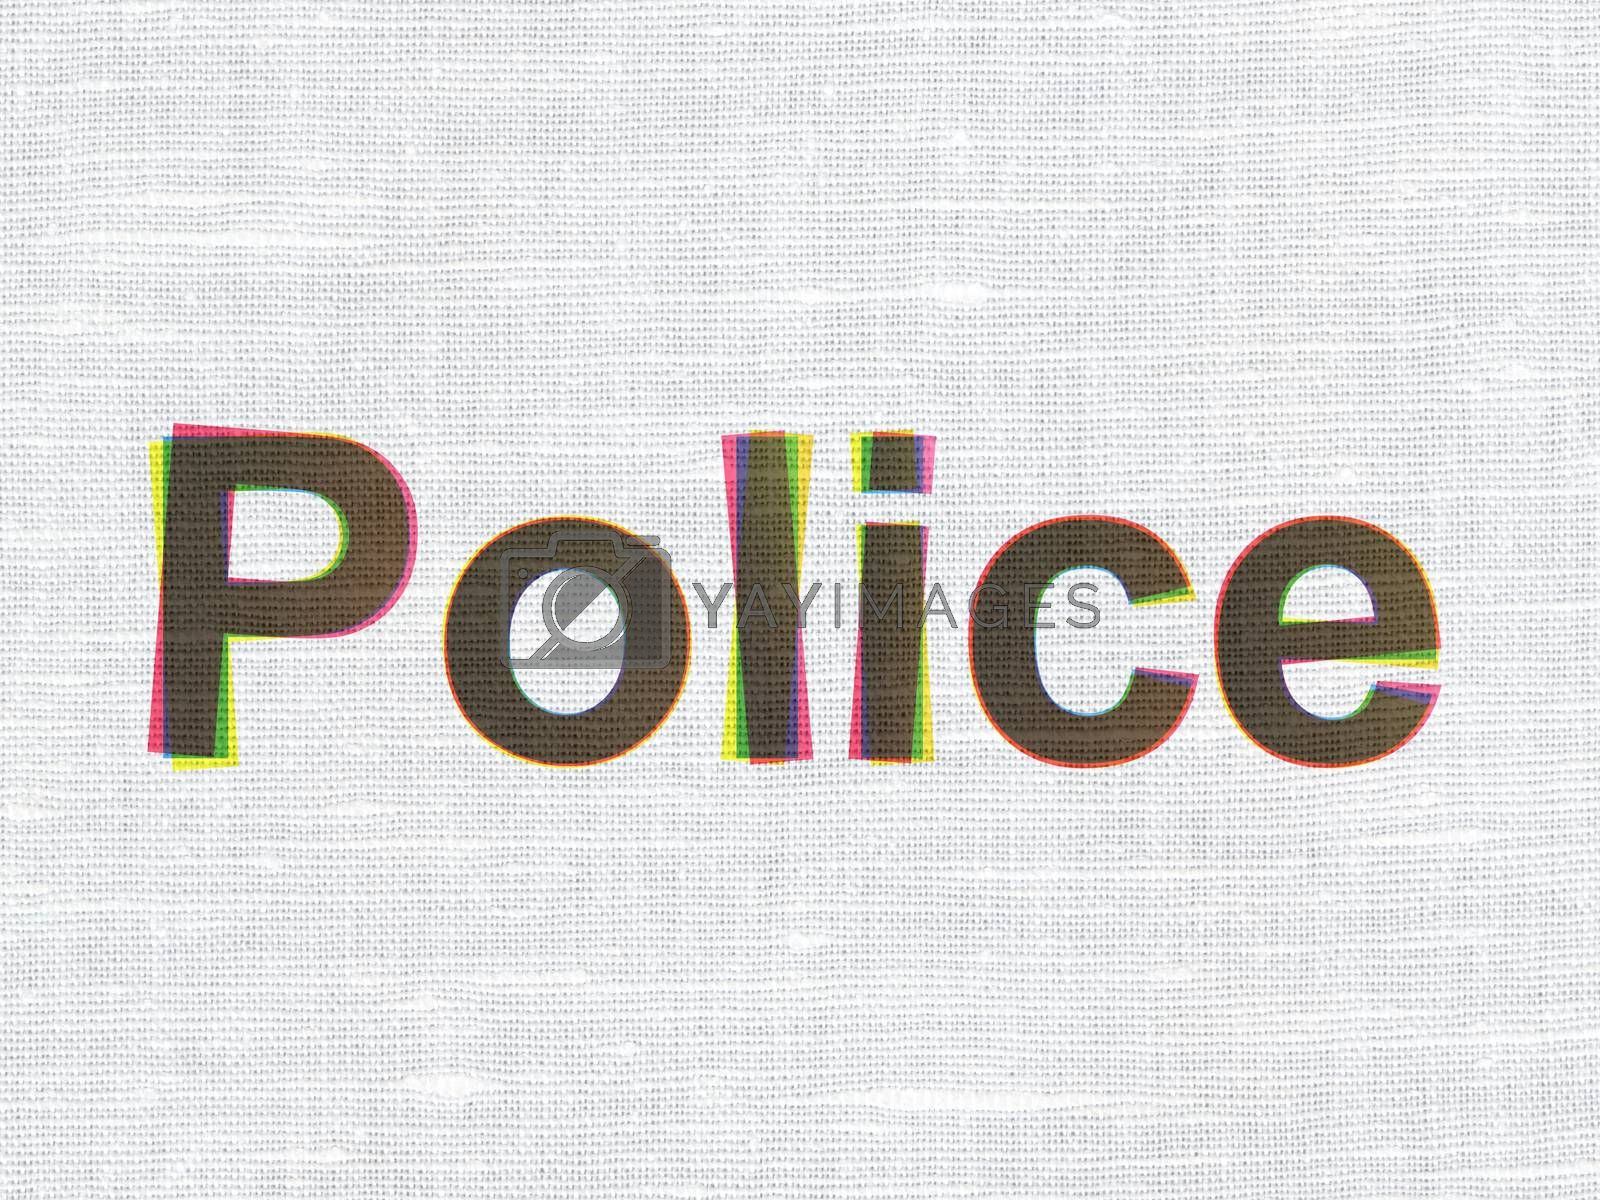 Law concept: Police on fabric texture background by maxkabakov